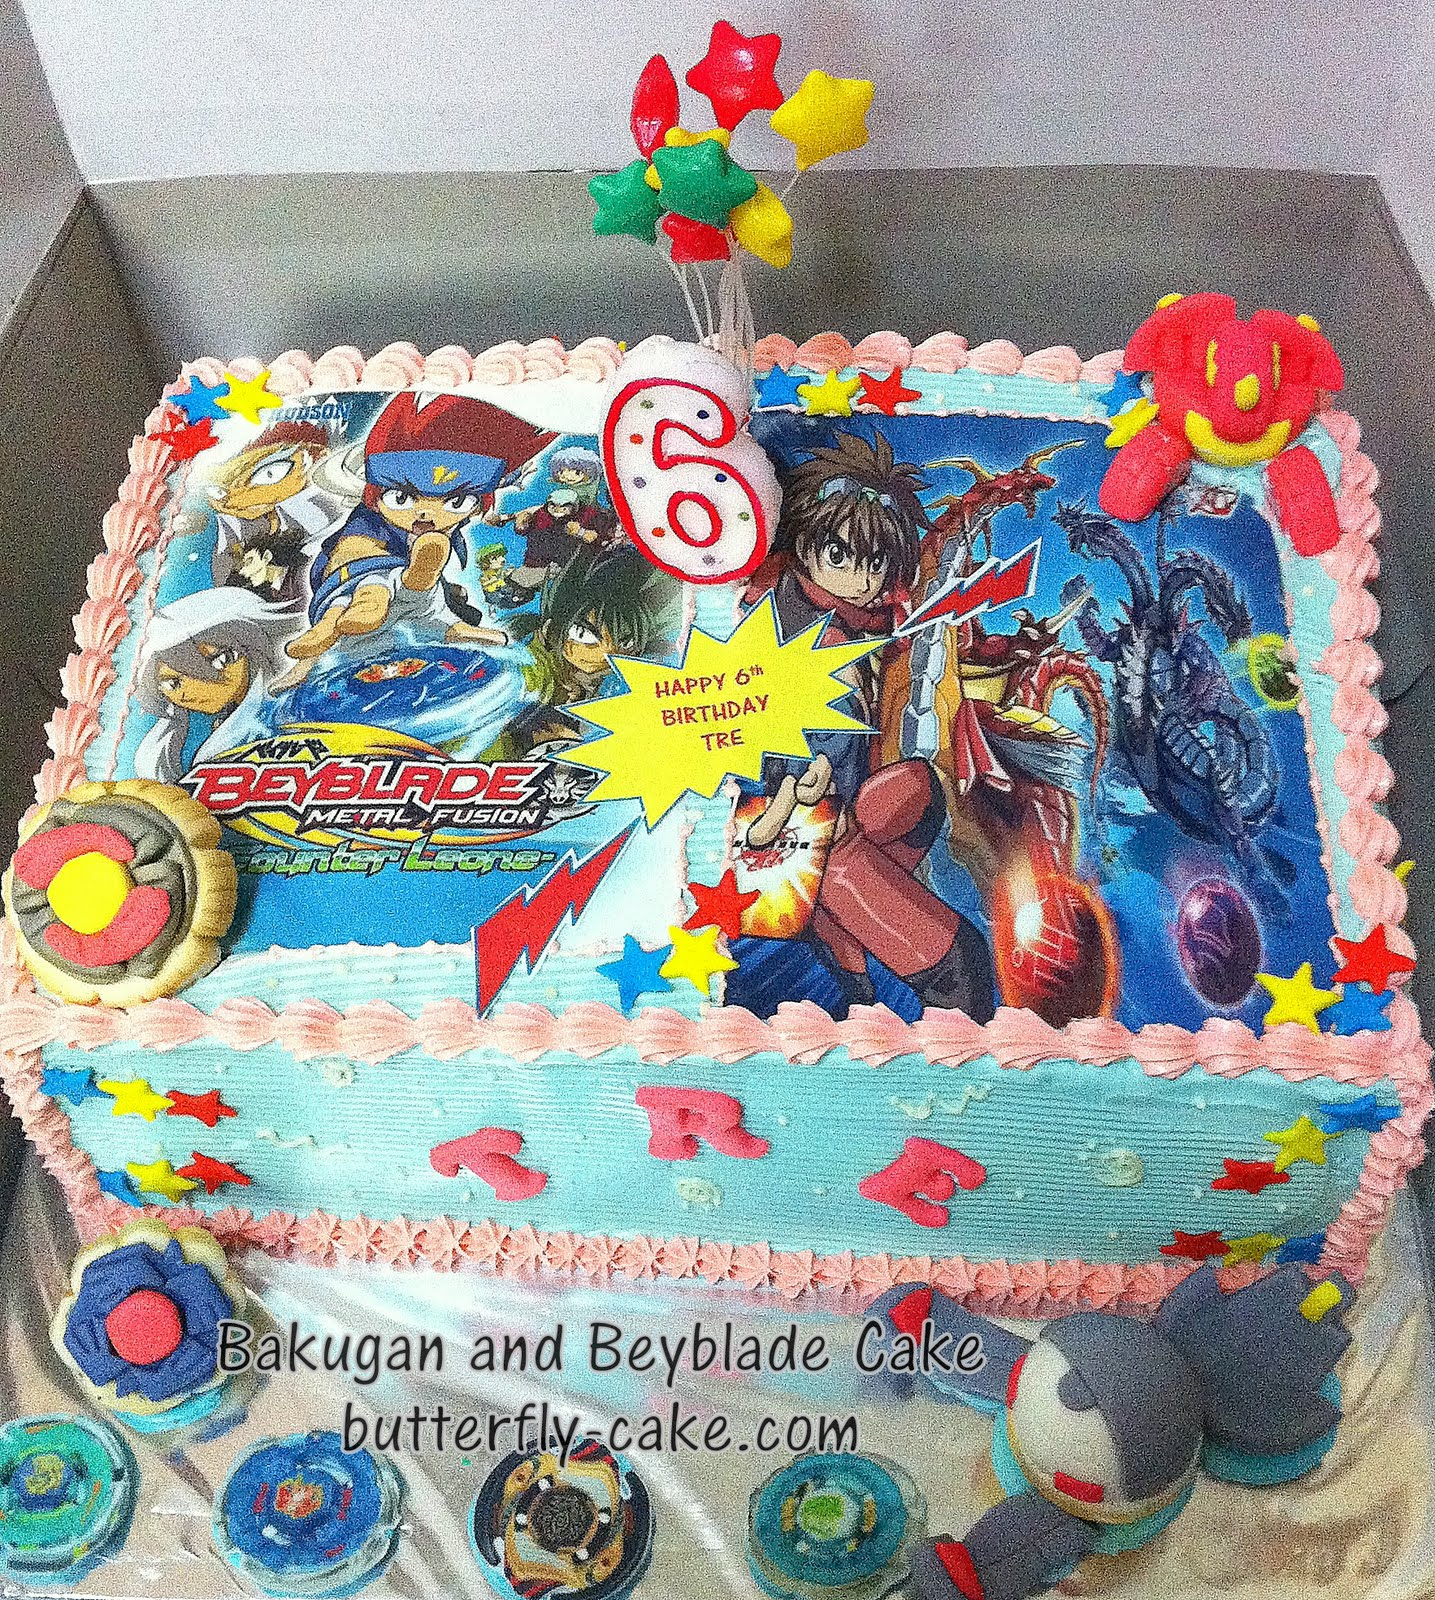 Butterfly Cake Bakugan And Beyblade Cake For Tre